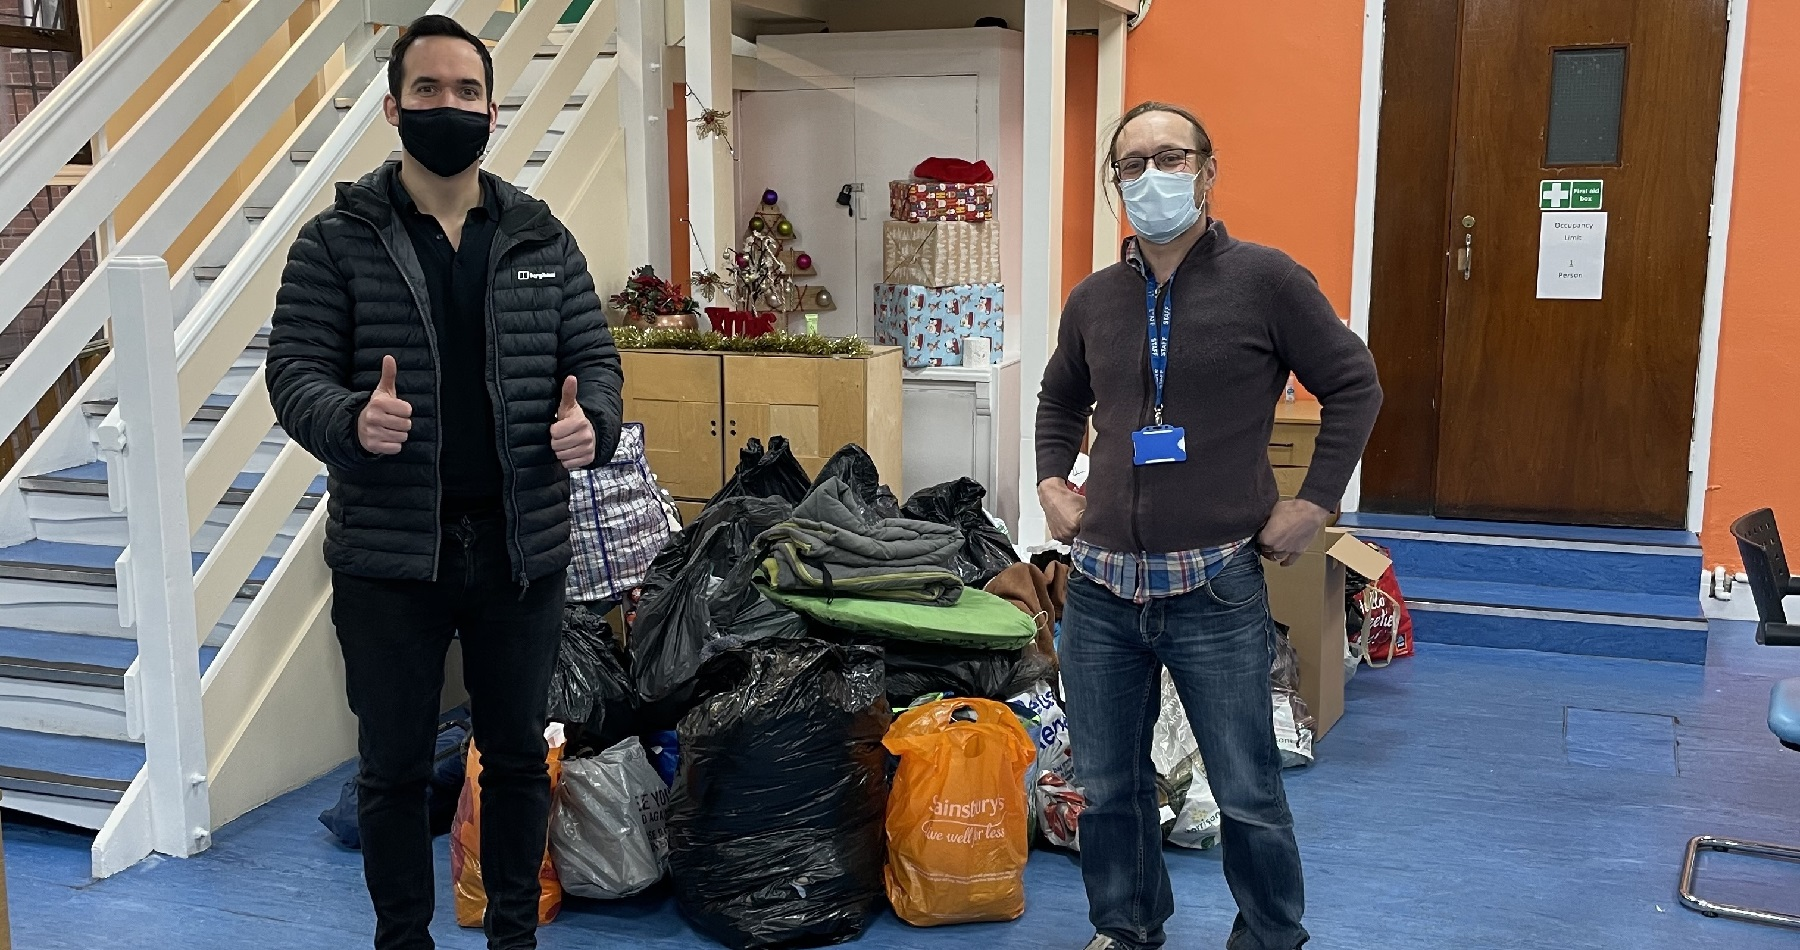 Hallam donates more than £1,000 worth of food and warm clothes to help Emmanuel House appeal